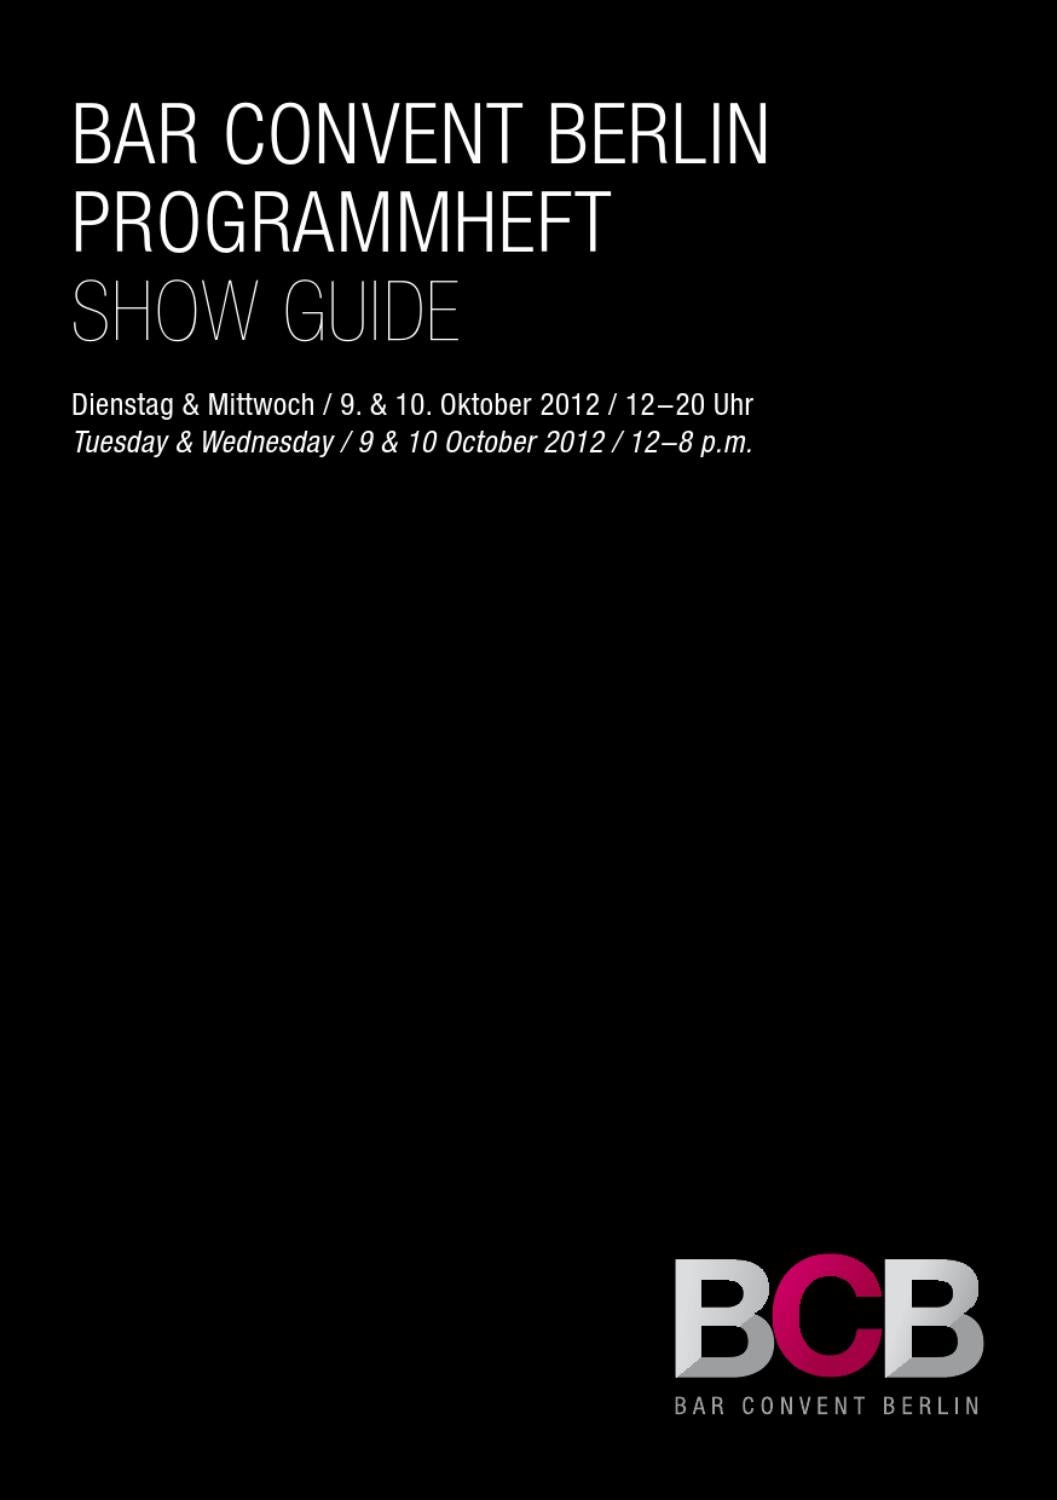 Bar Convent Berlin 2012 // The Show Guide // Programmheft by ...